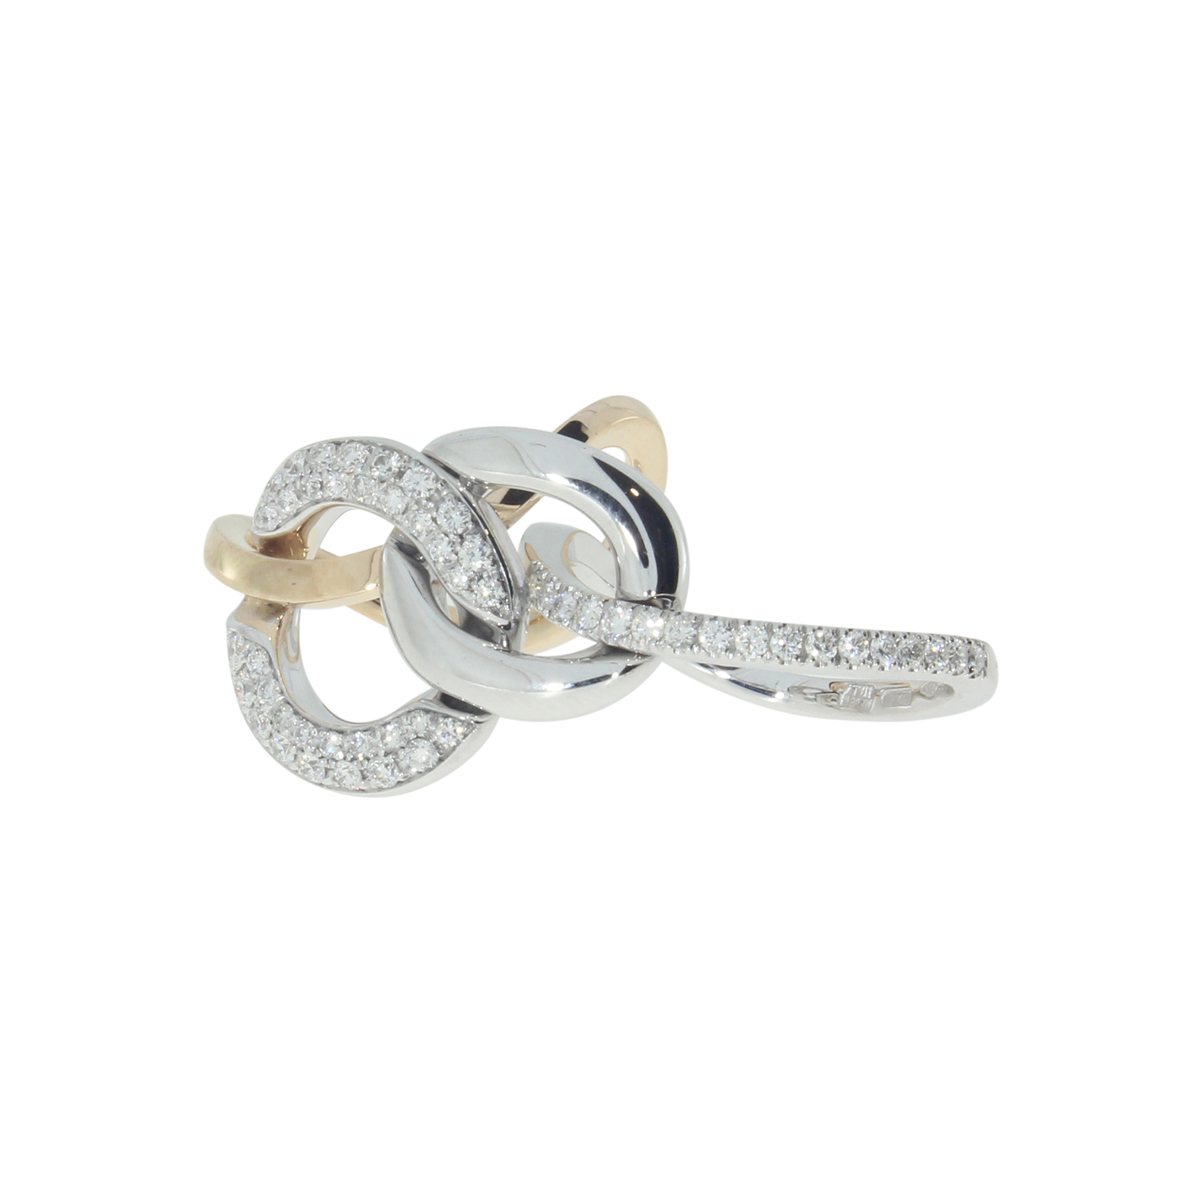 18 Kt White Gold Link Ring with Diamonds